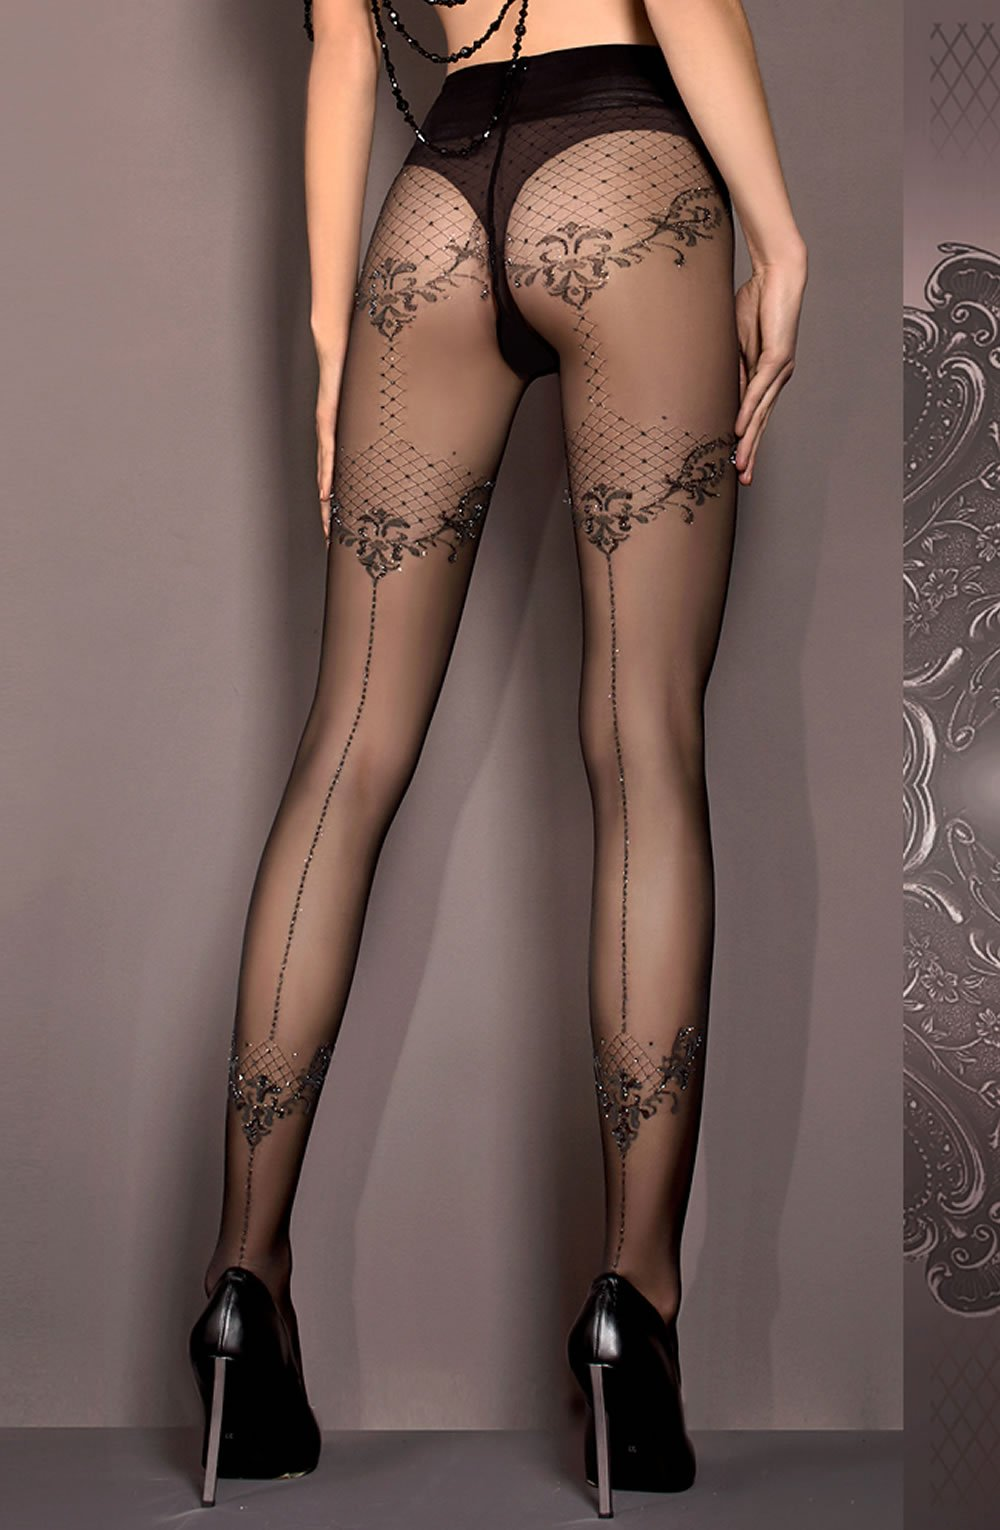 Ballerina 413 Tights Nero (Black) - Lingerie Best Lingerie